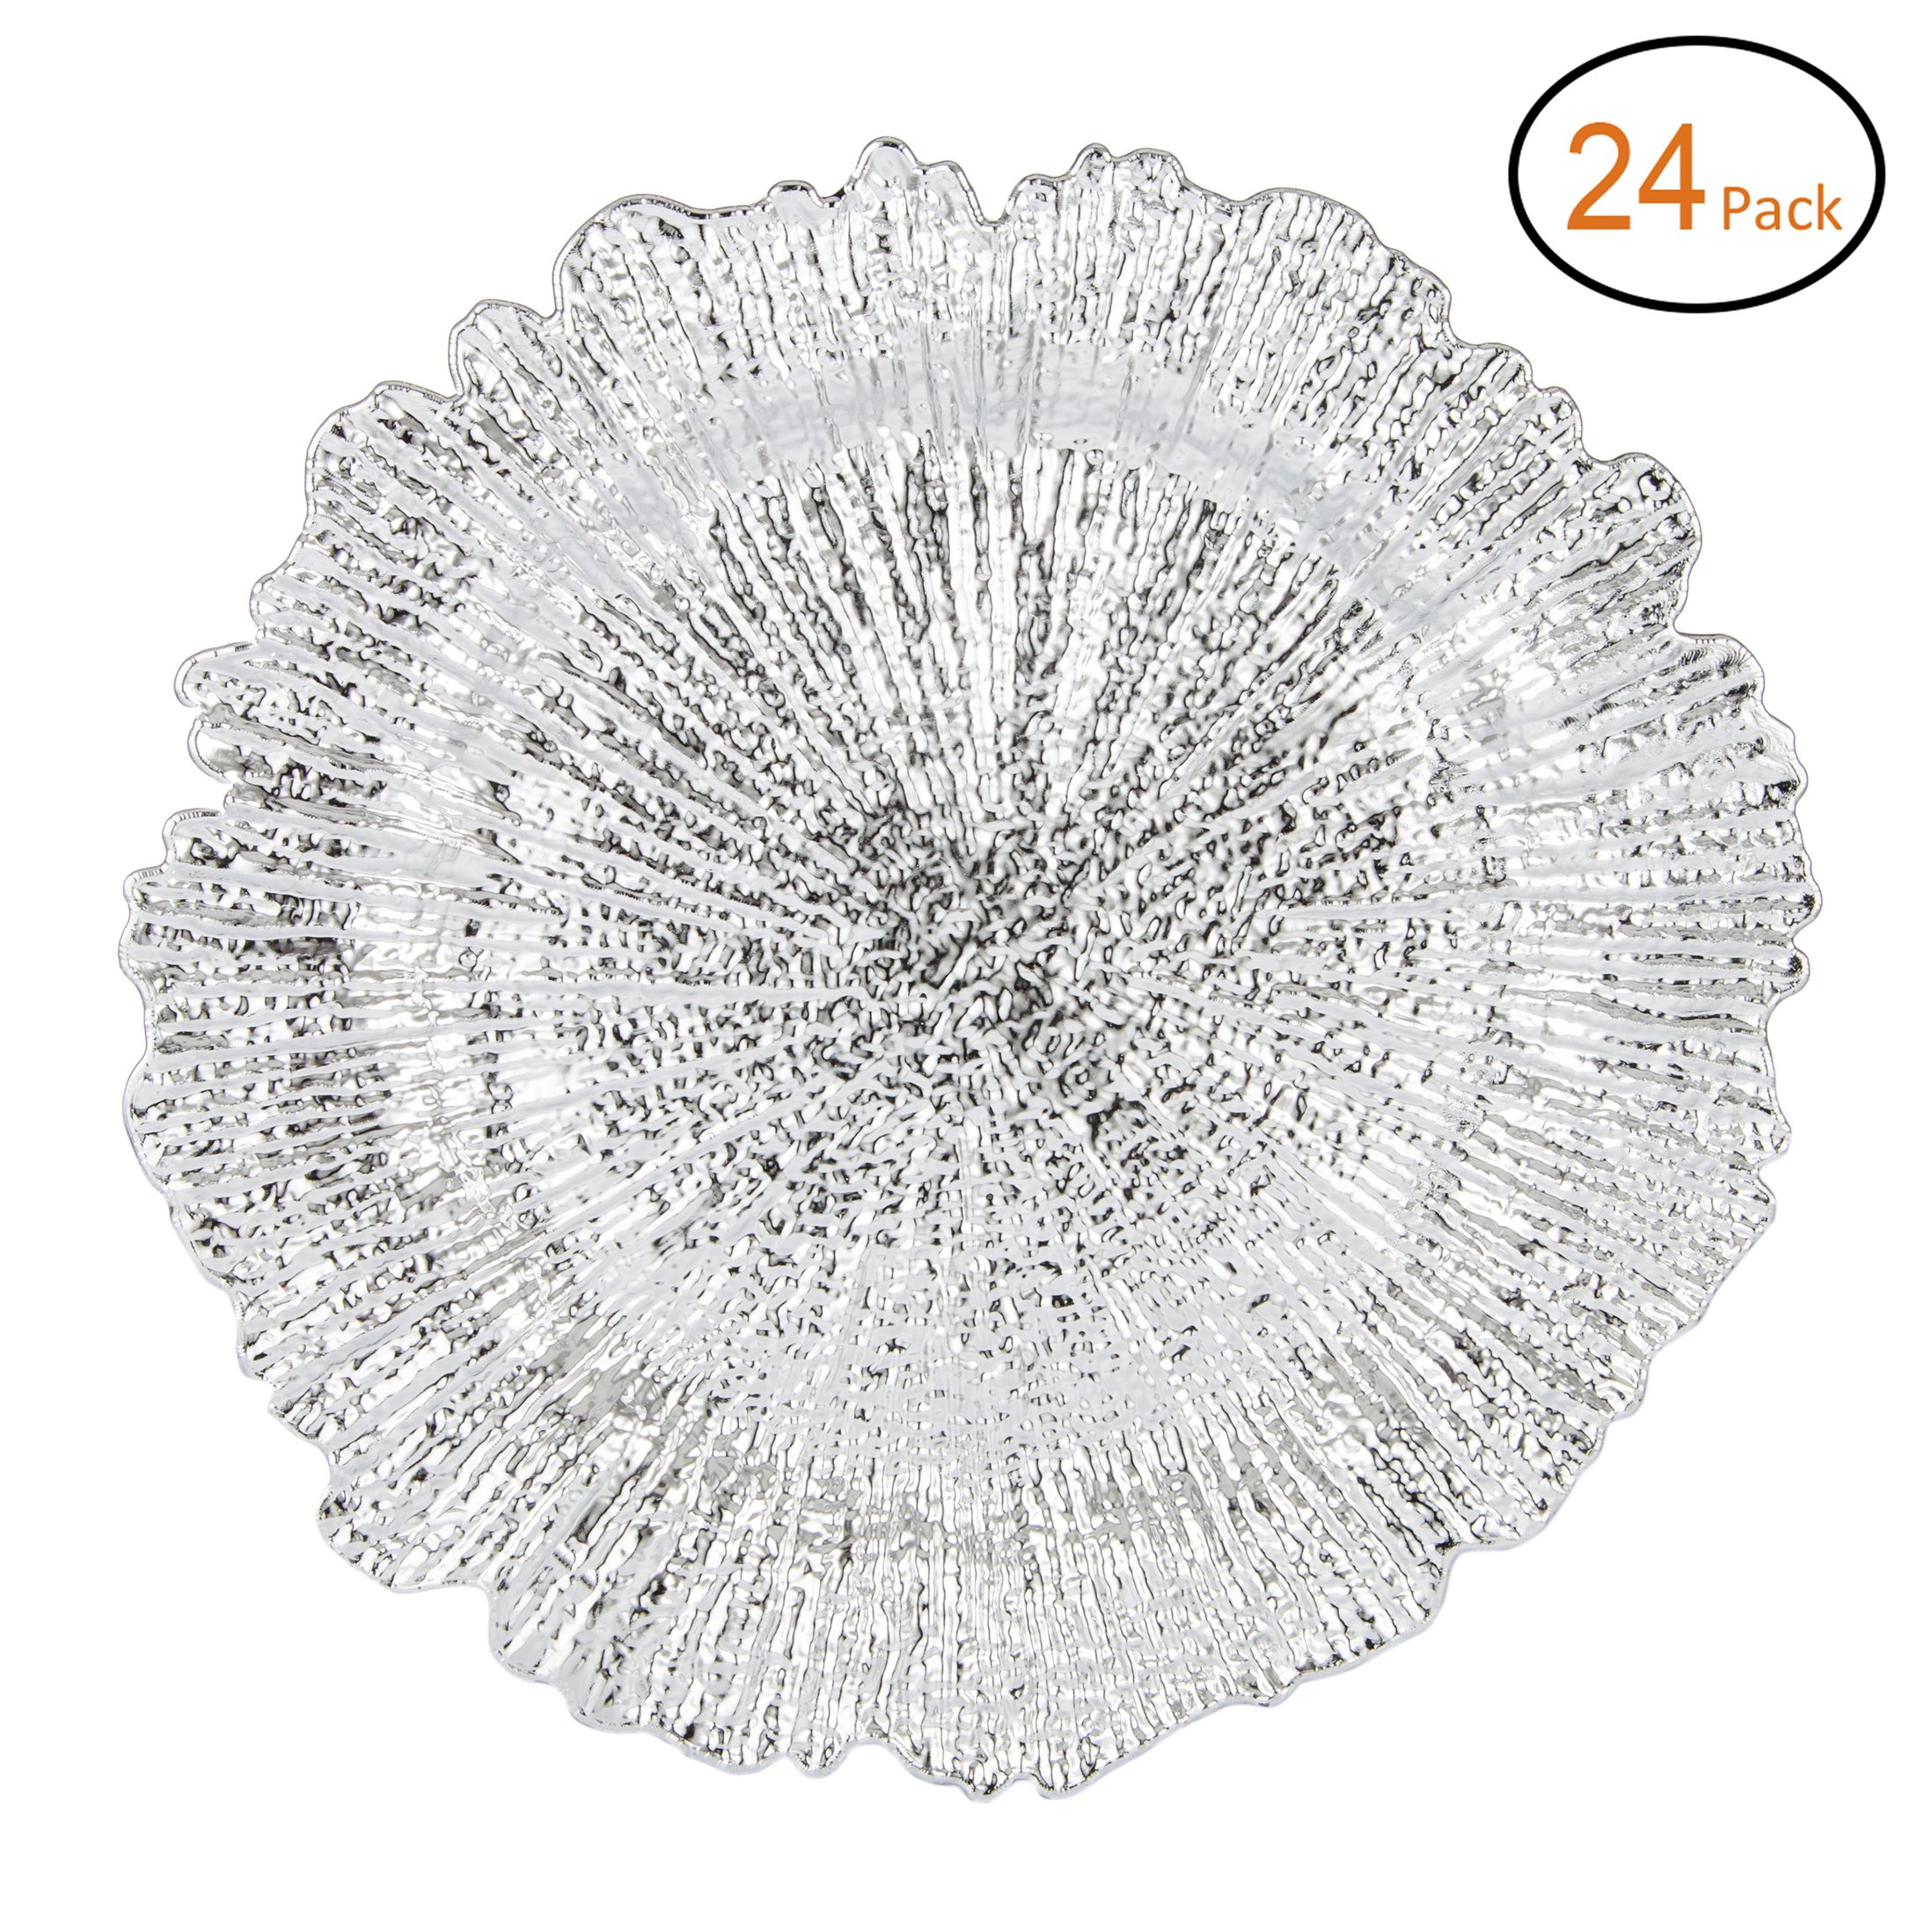 Fantastic:)™ Round 13''x13'' Charger Plates with Eletroplating Finish (24, Reef Silver)